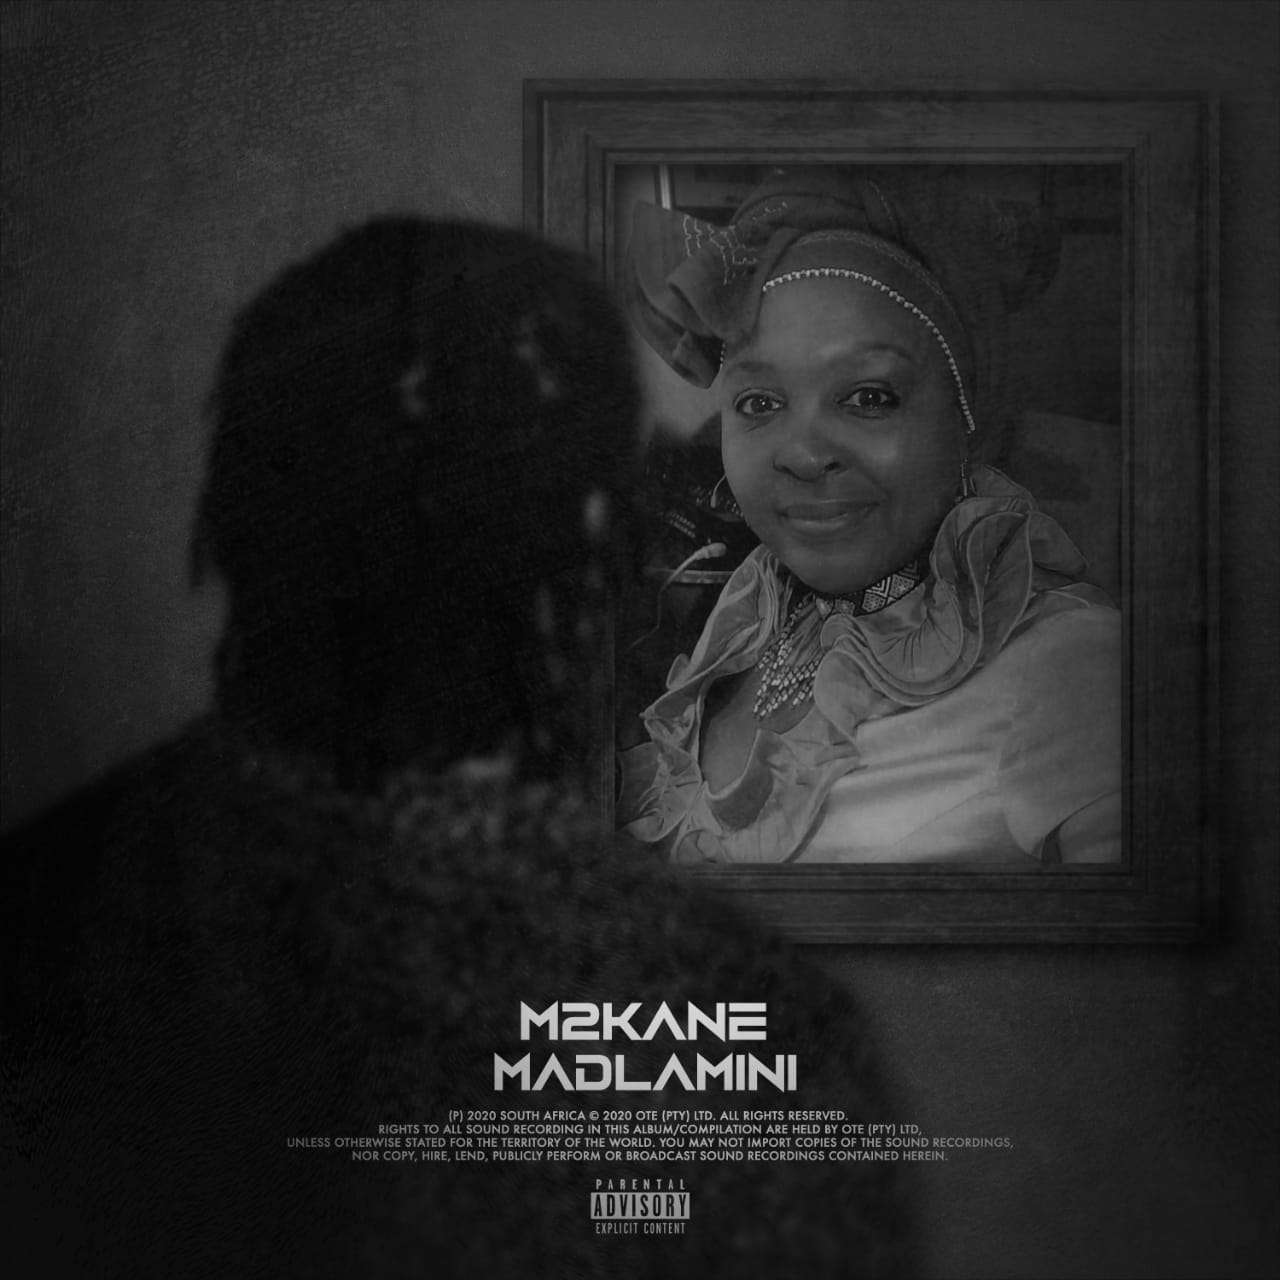 DOWNLOAD M2KaNE – MaDlamini MP3